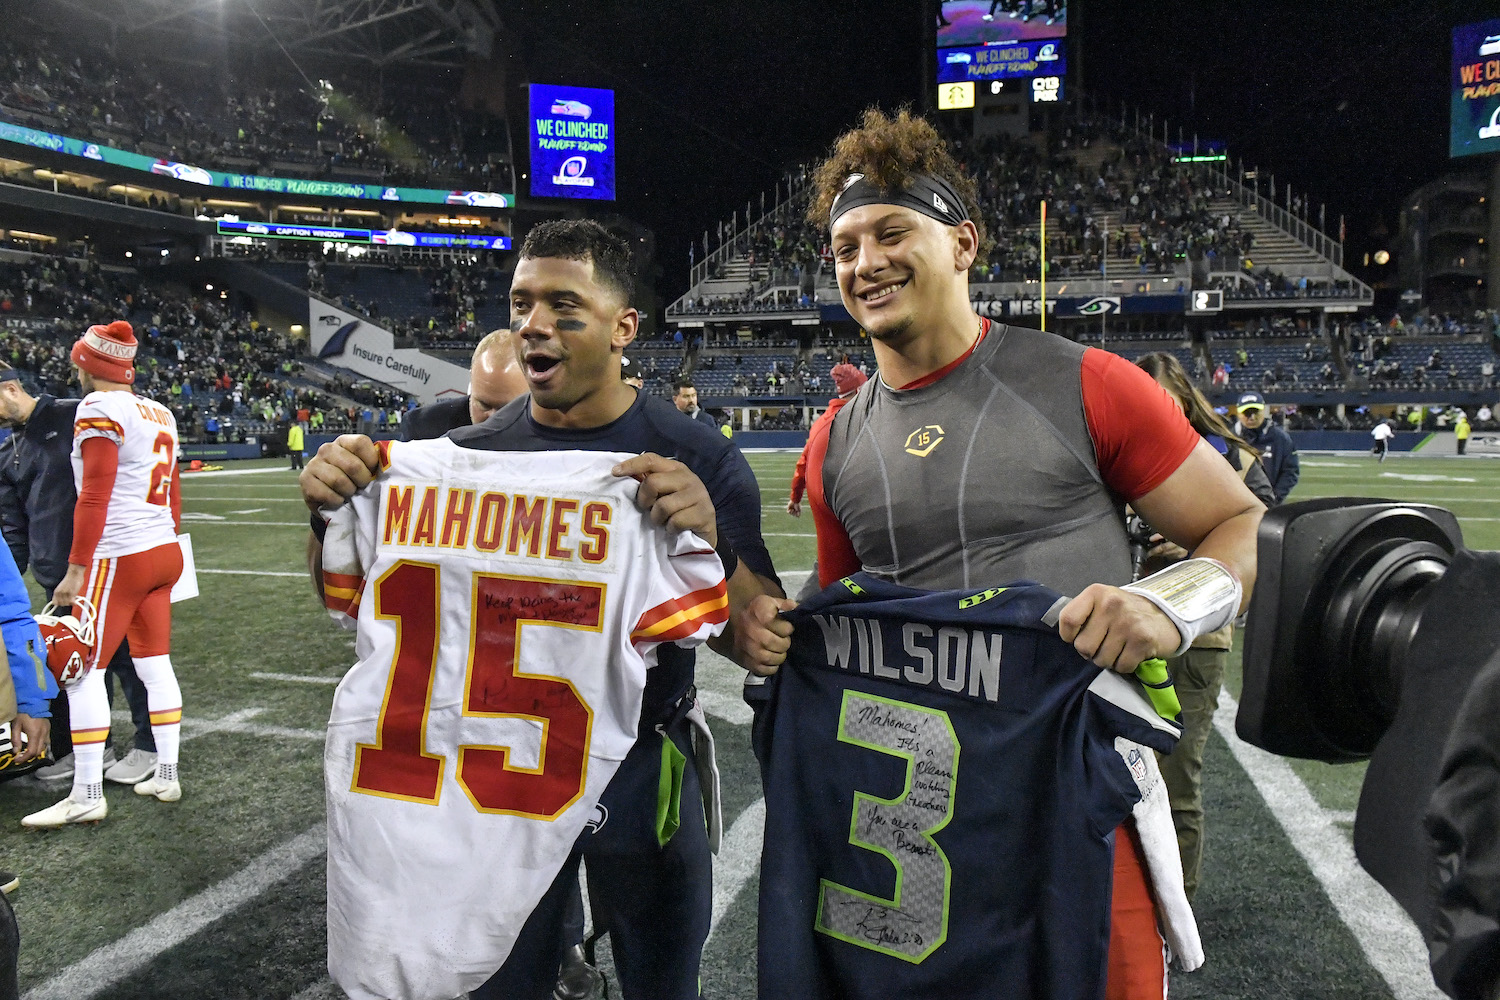 Russell Wilson's stellar play makes him a leading NFL MVP candidate, but Patrick Mahomes is complicating the race.